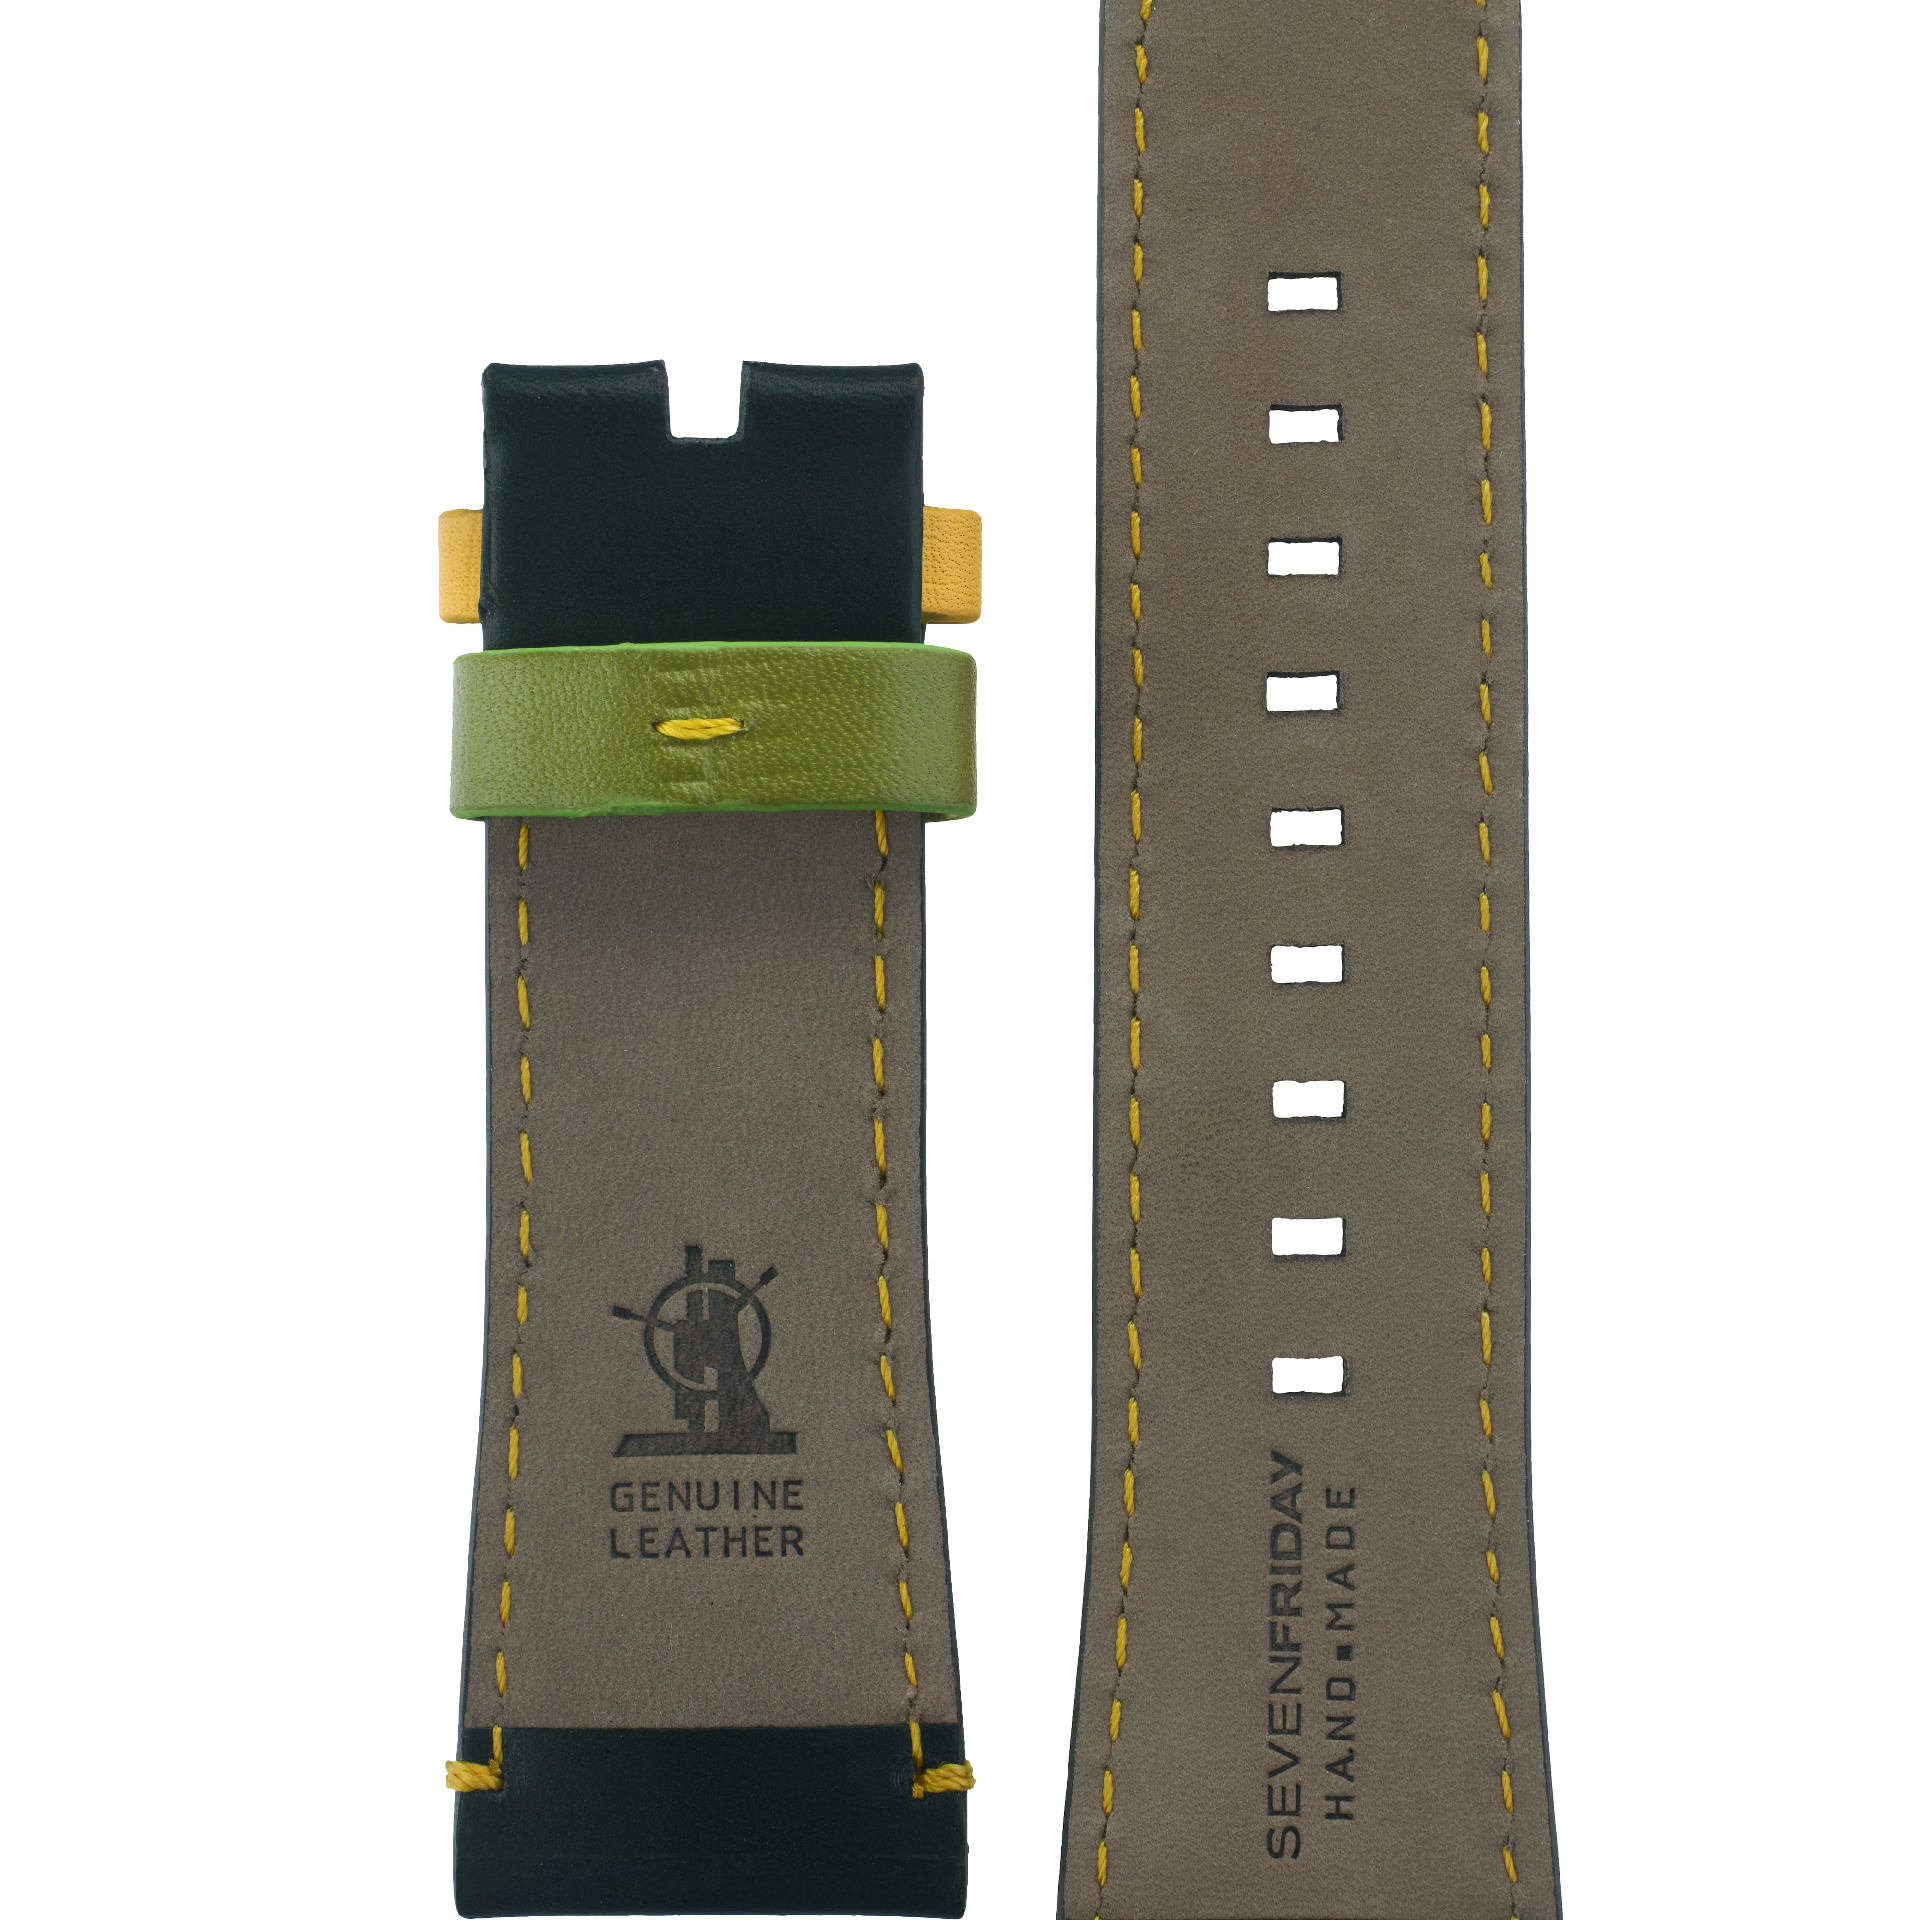 Leather strap black, yellow stitching, yellow and green loop